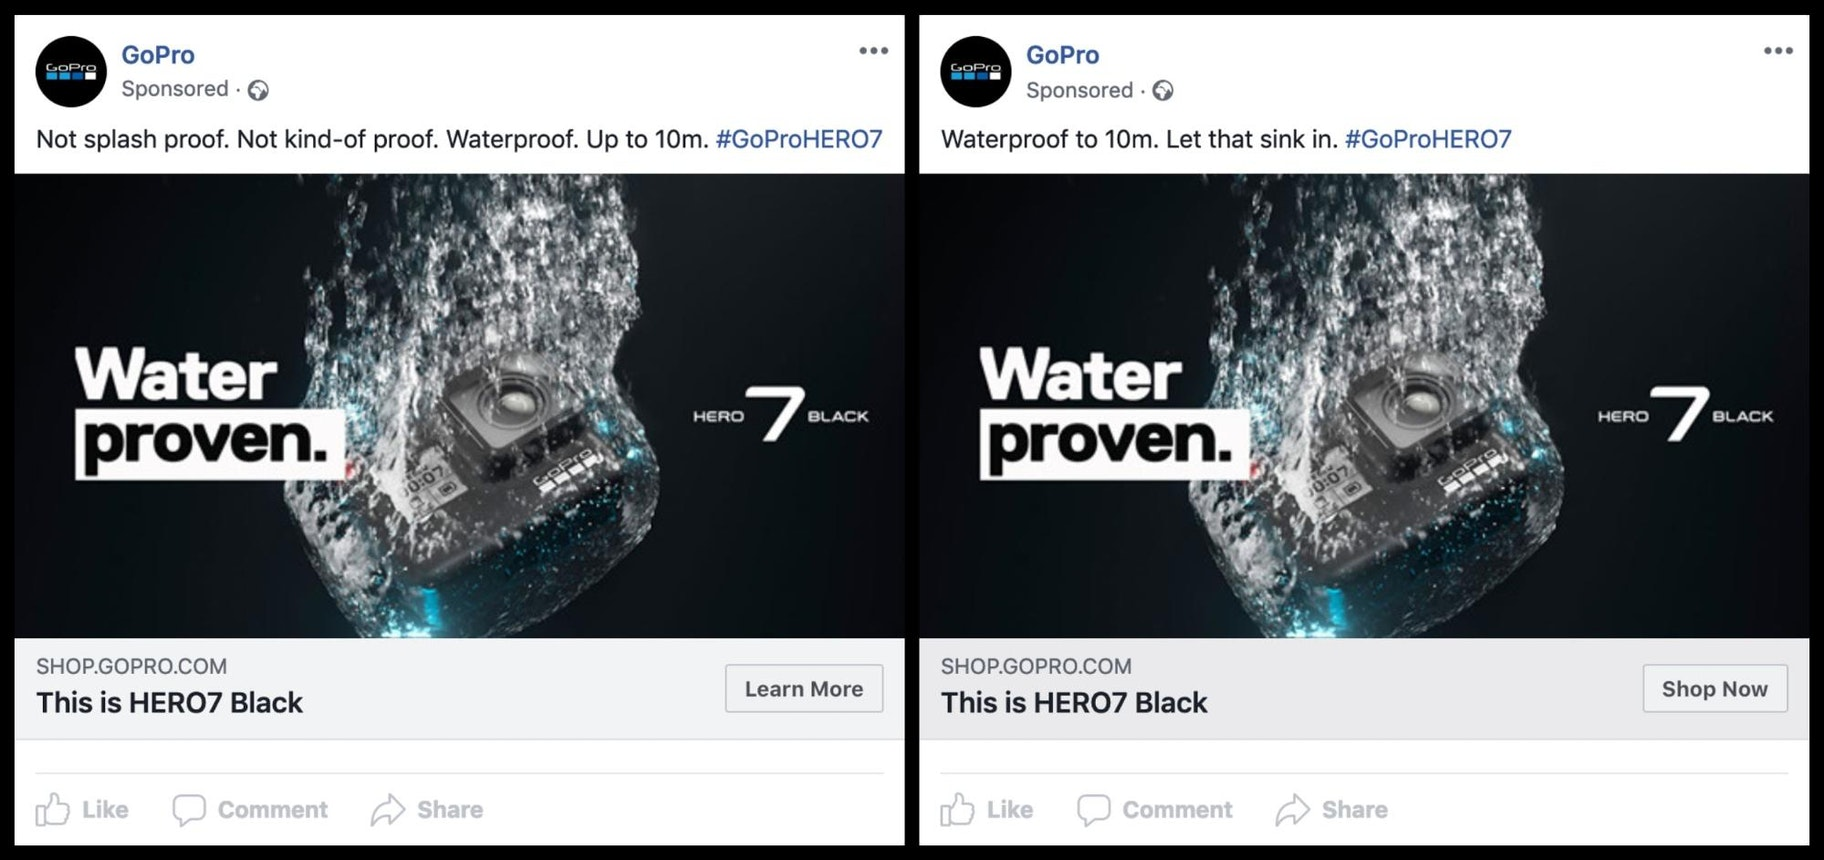 GoPro Facebook Info and Ads